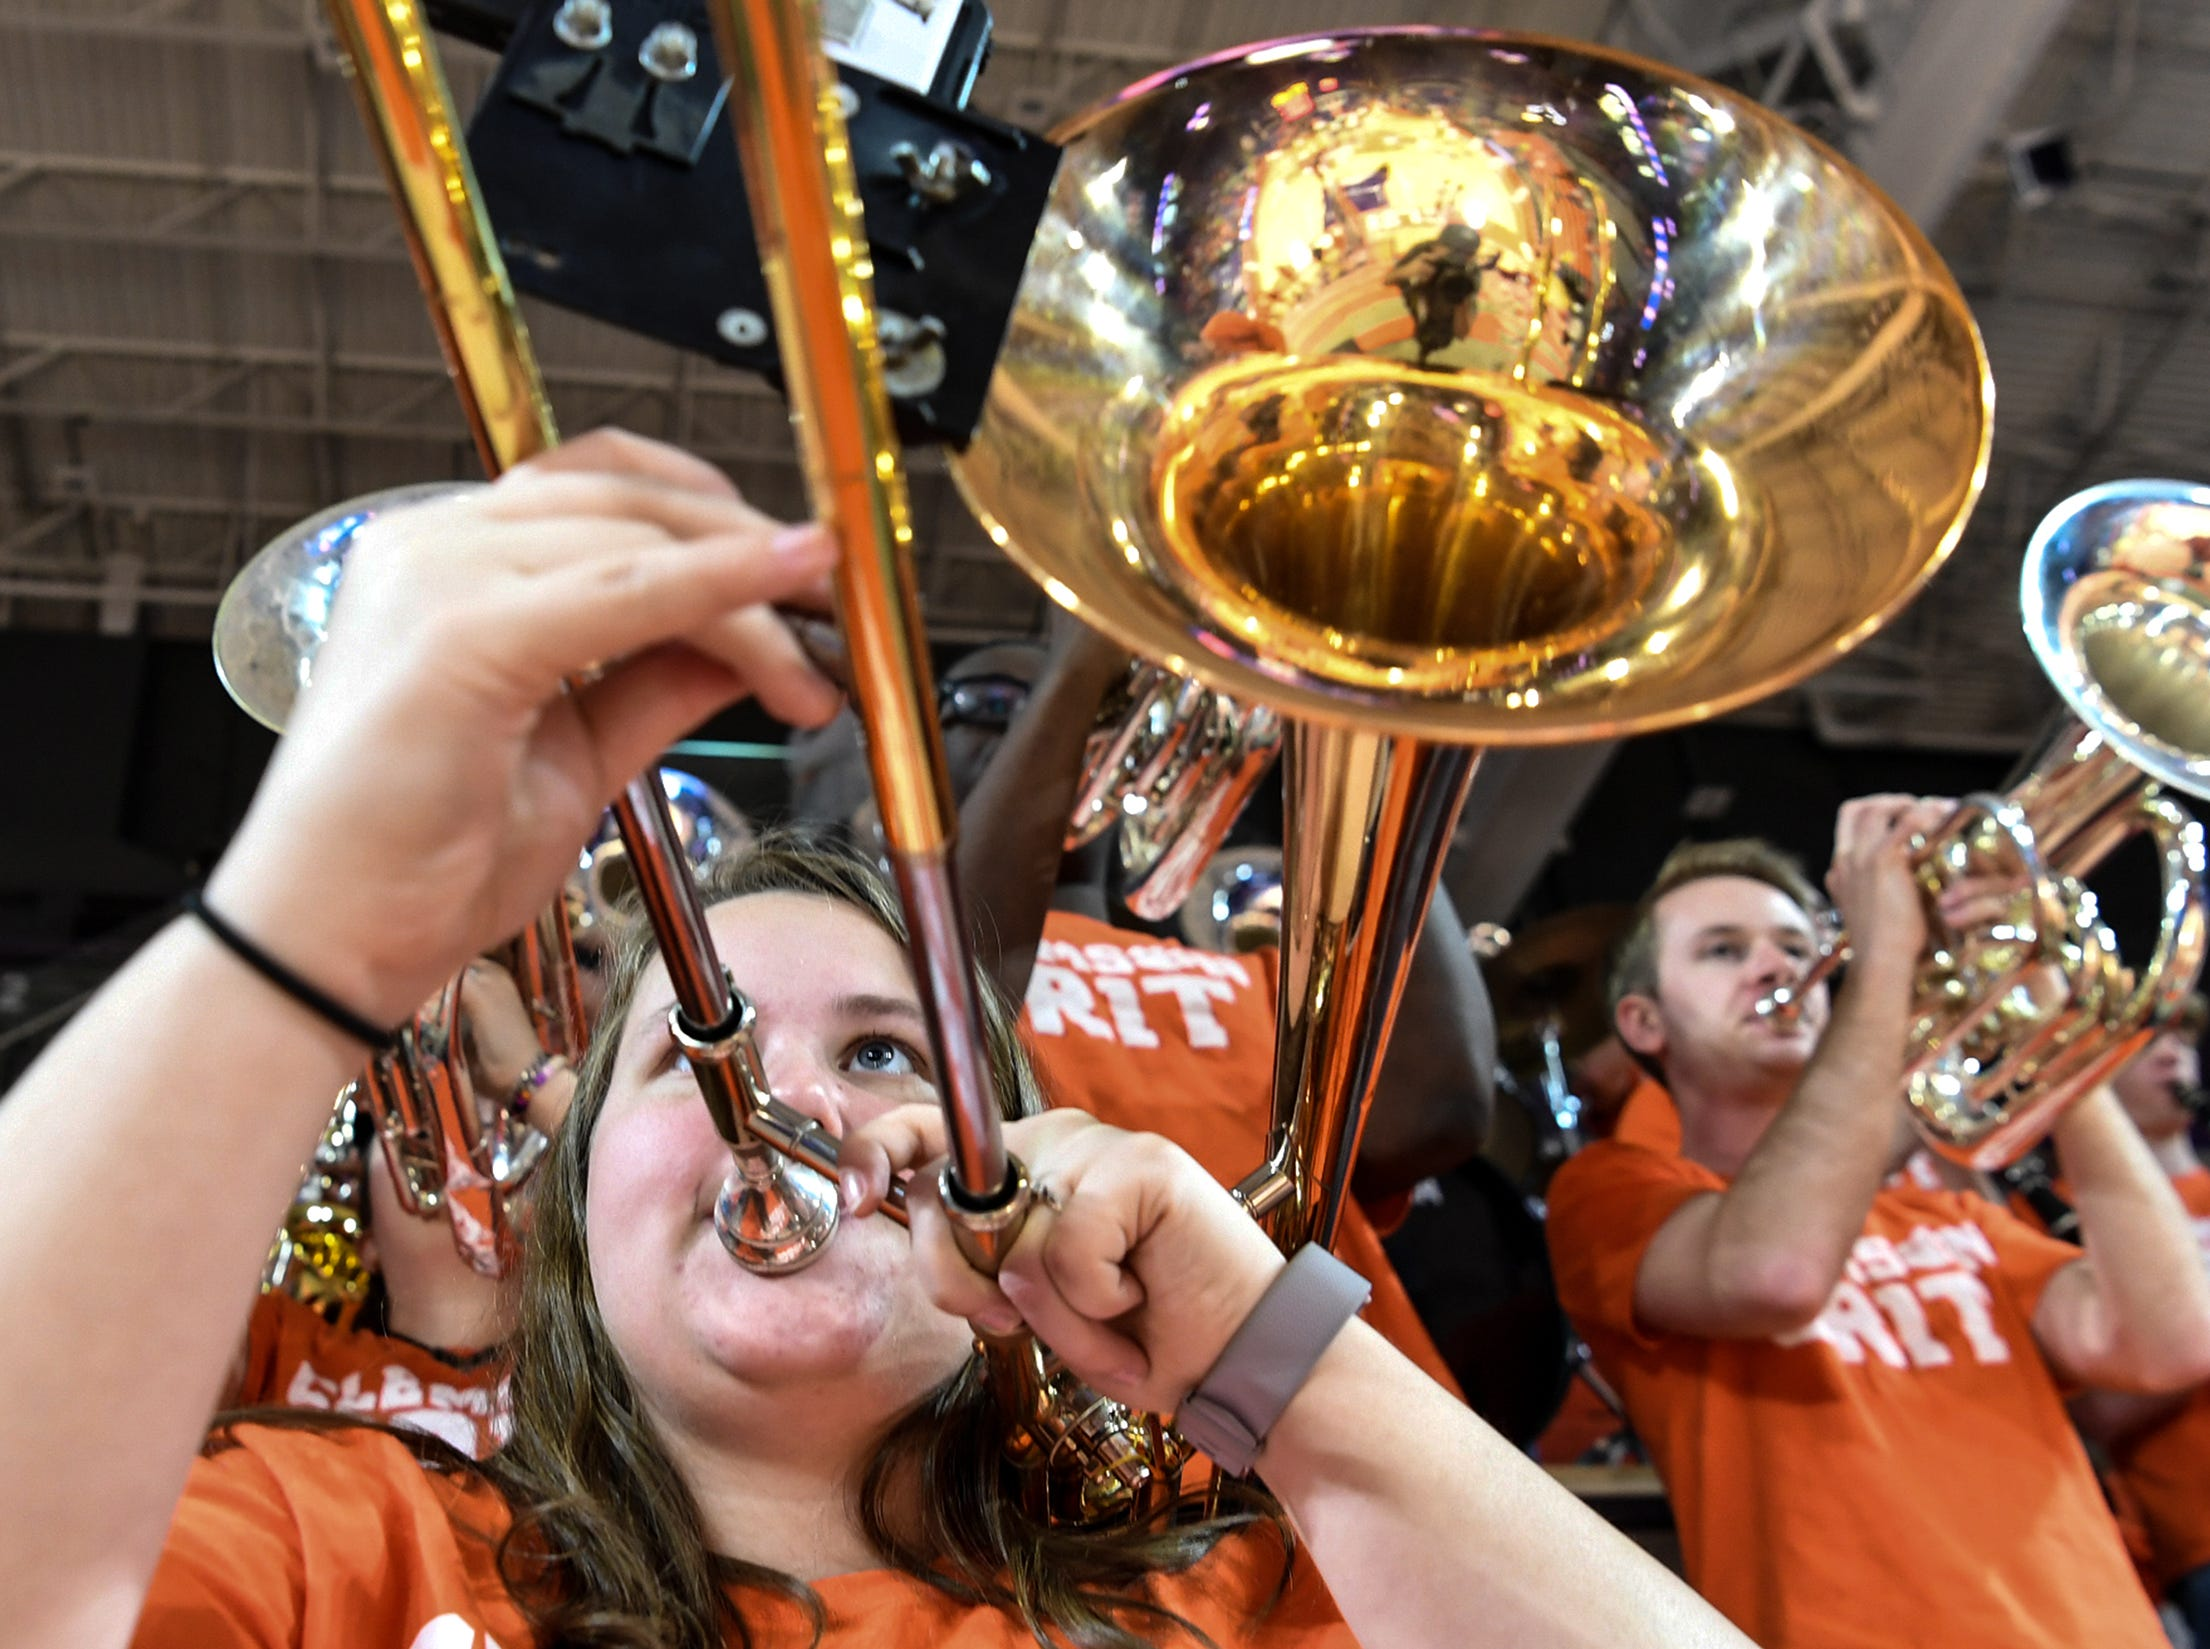 Jessie Blakely, a sophomore trombone player in the Tiger Band, plays during the first half of the NIT at Littlejohn Coliseum in Clemson Tuesday, March 19, 2019.